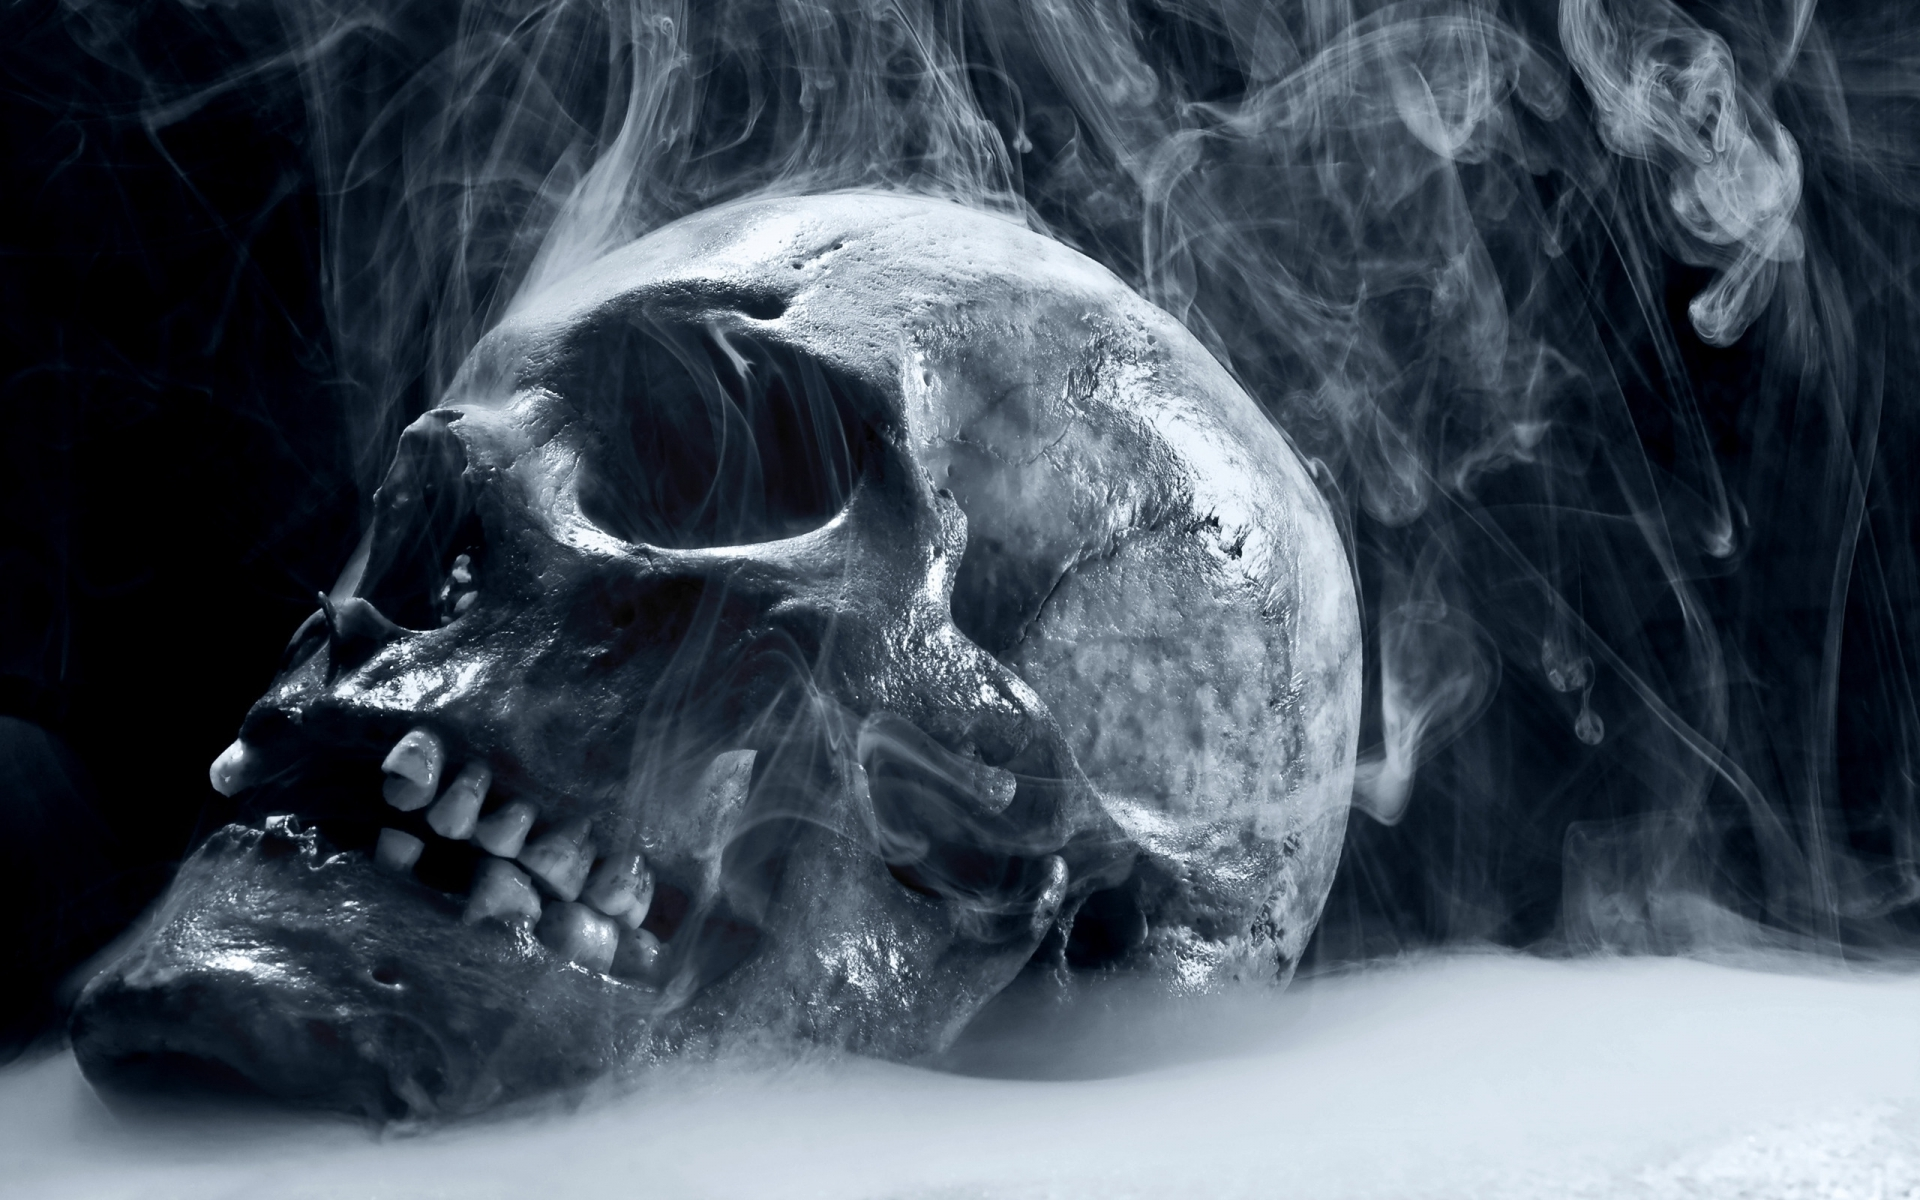 Scary Frozen Skull Wallpapers HD 1920x1200